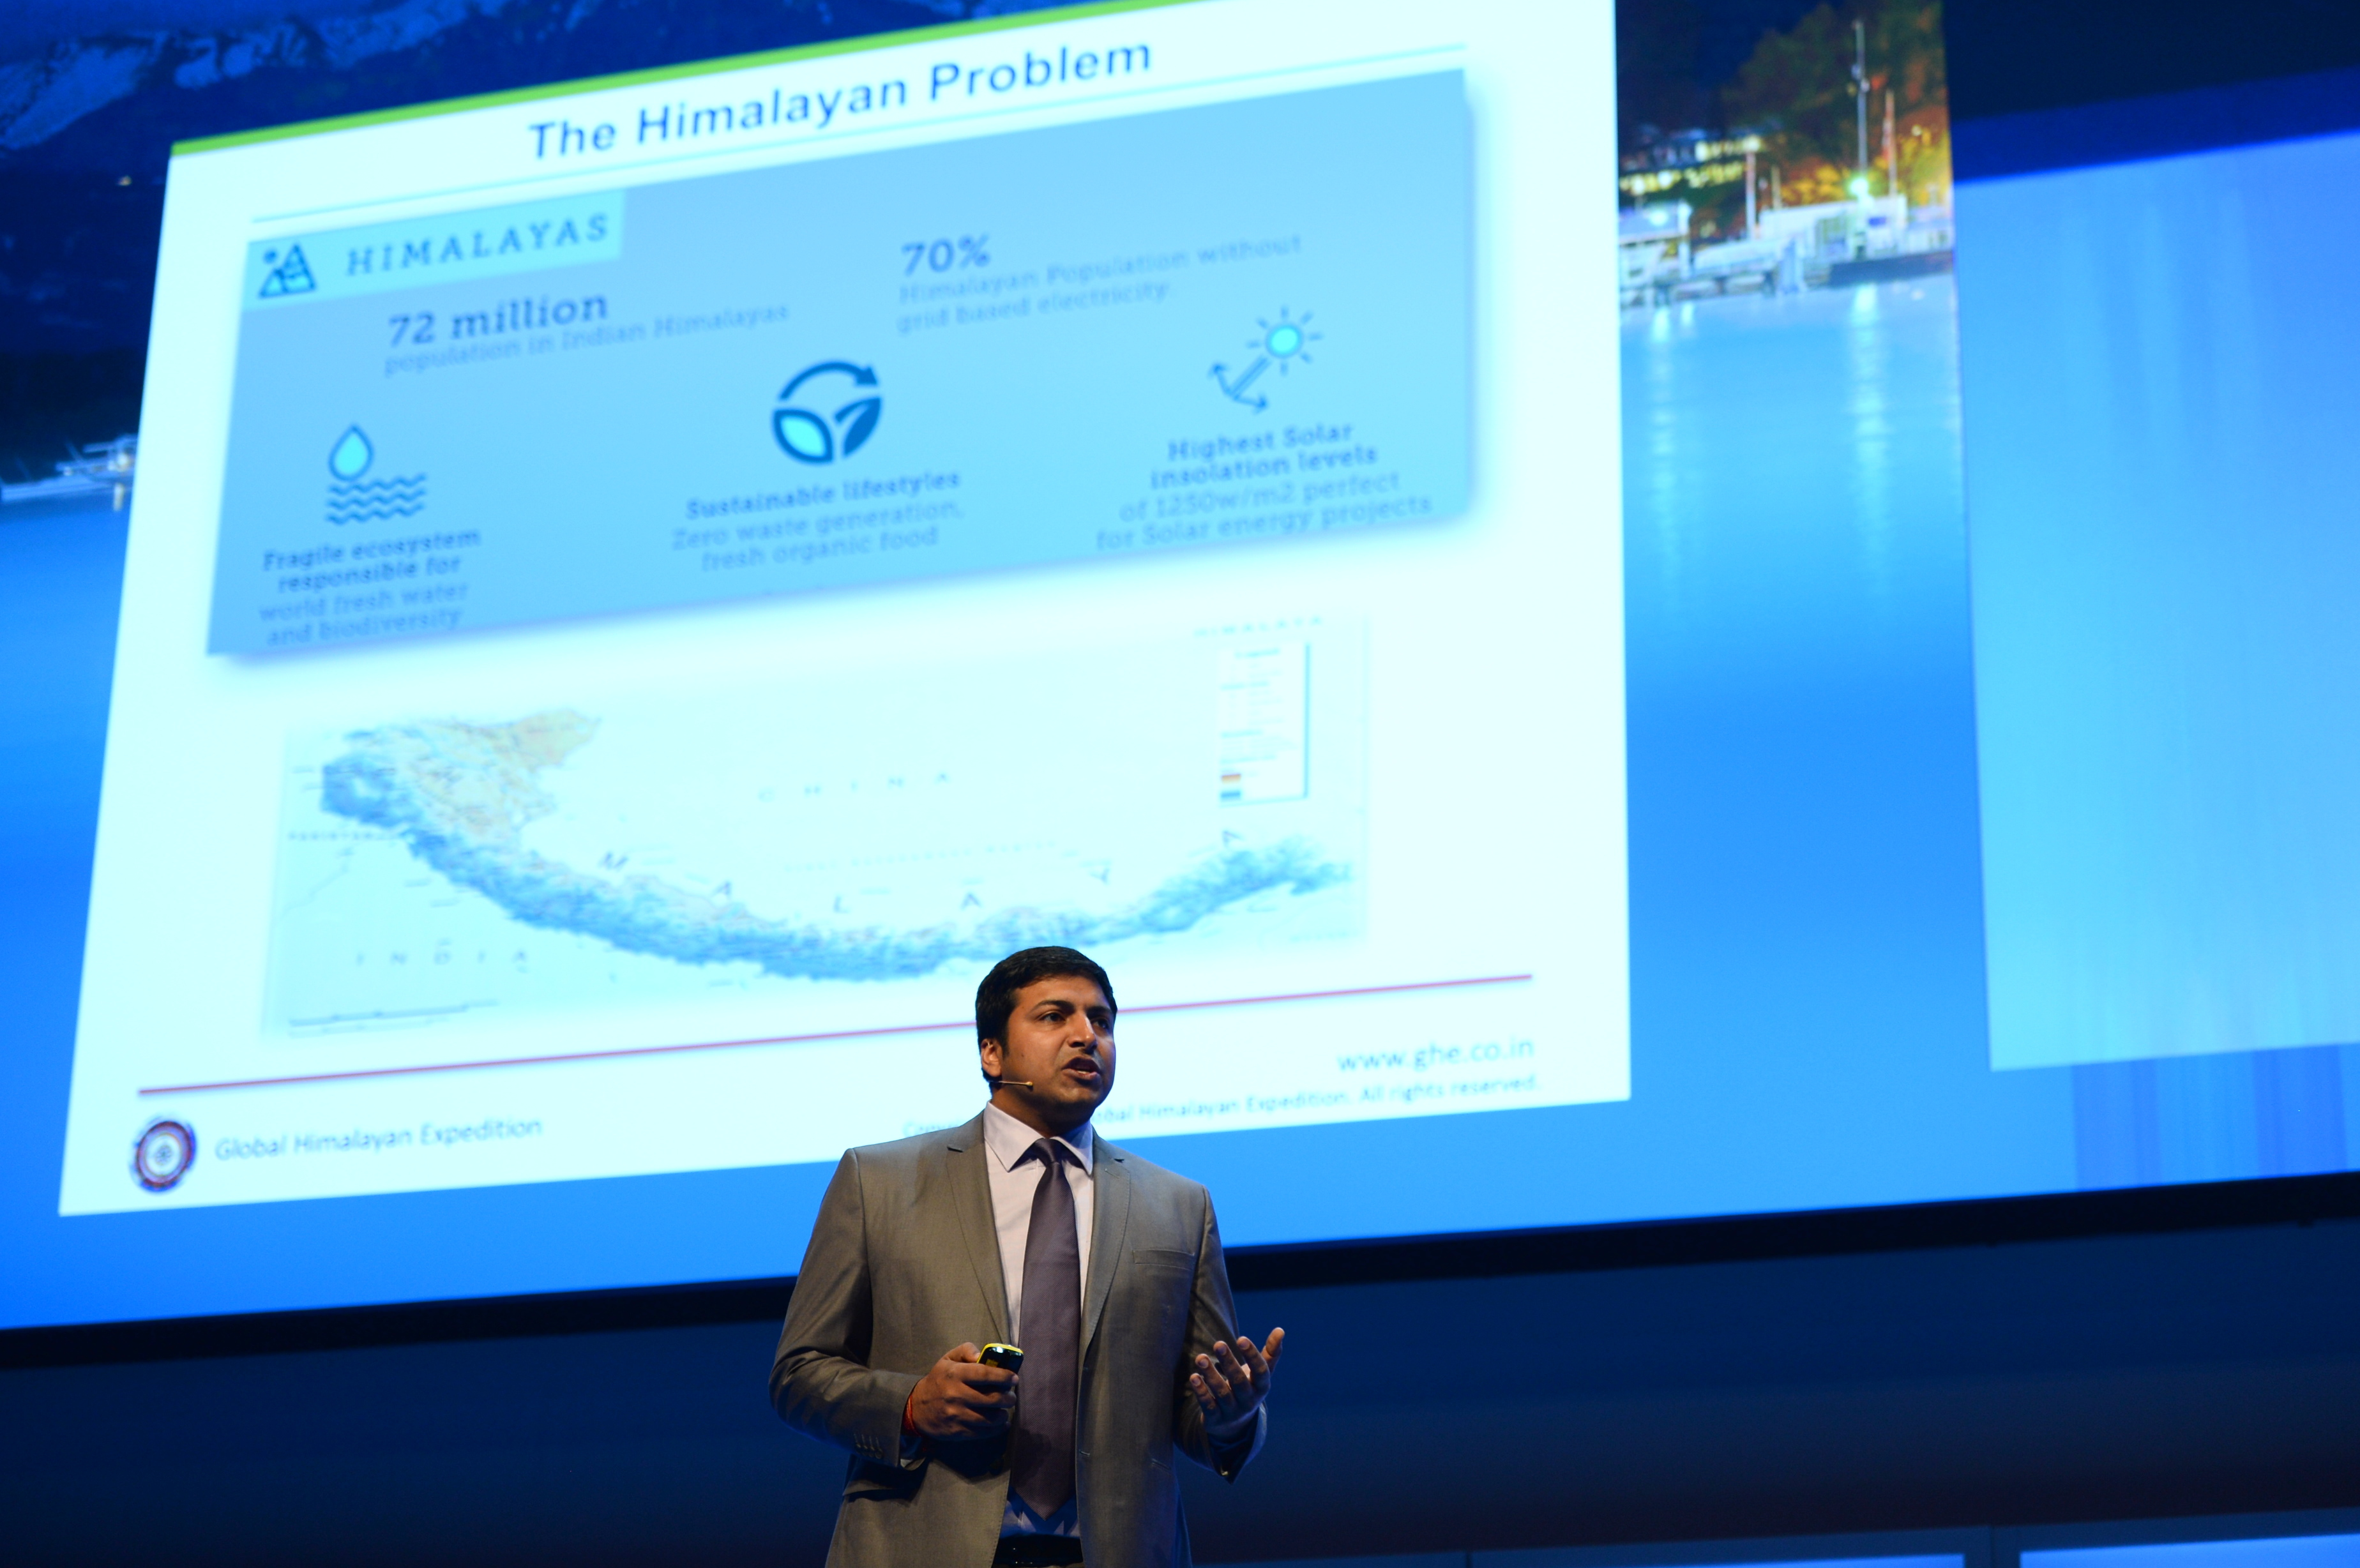 Paras Loomba, founder of Global Himalayan Expedition, presents at the World Tourism Forum Lucerne